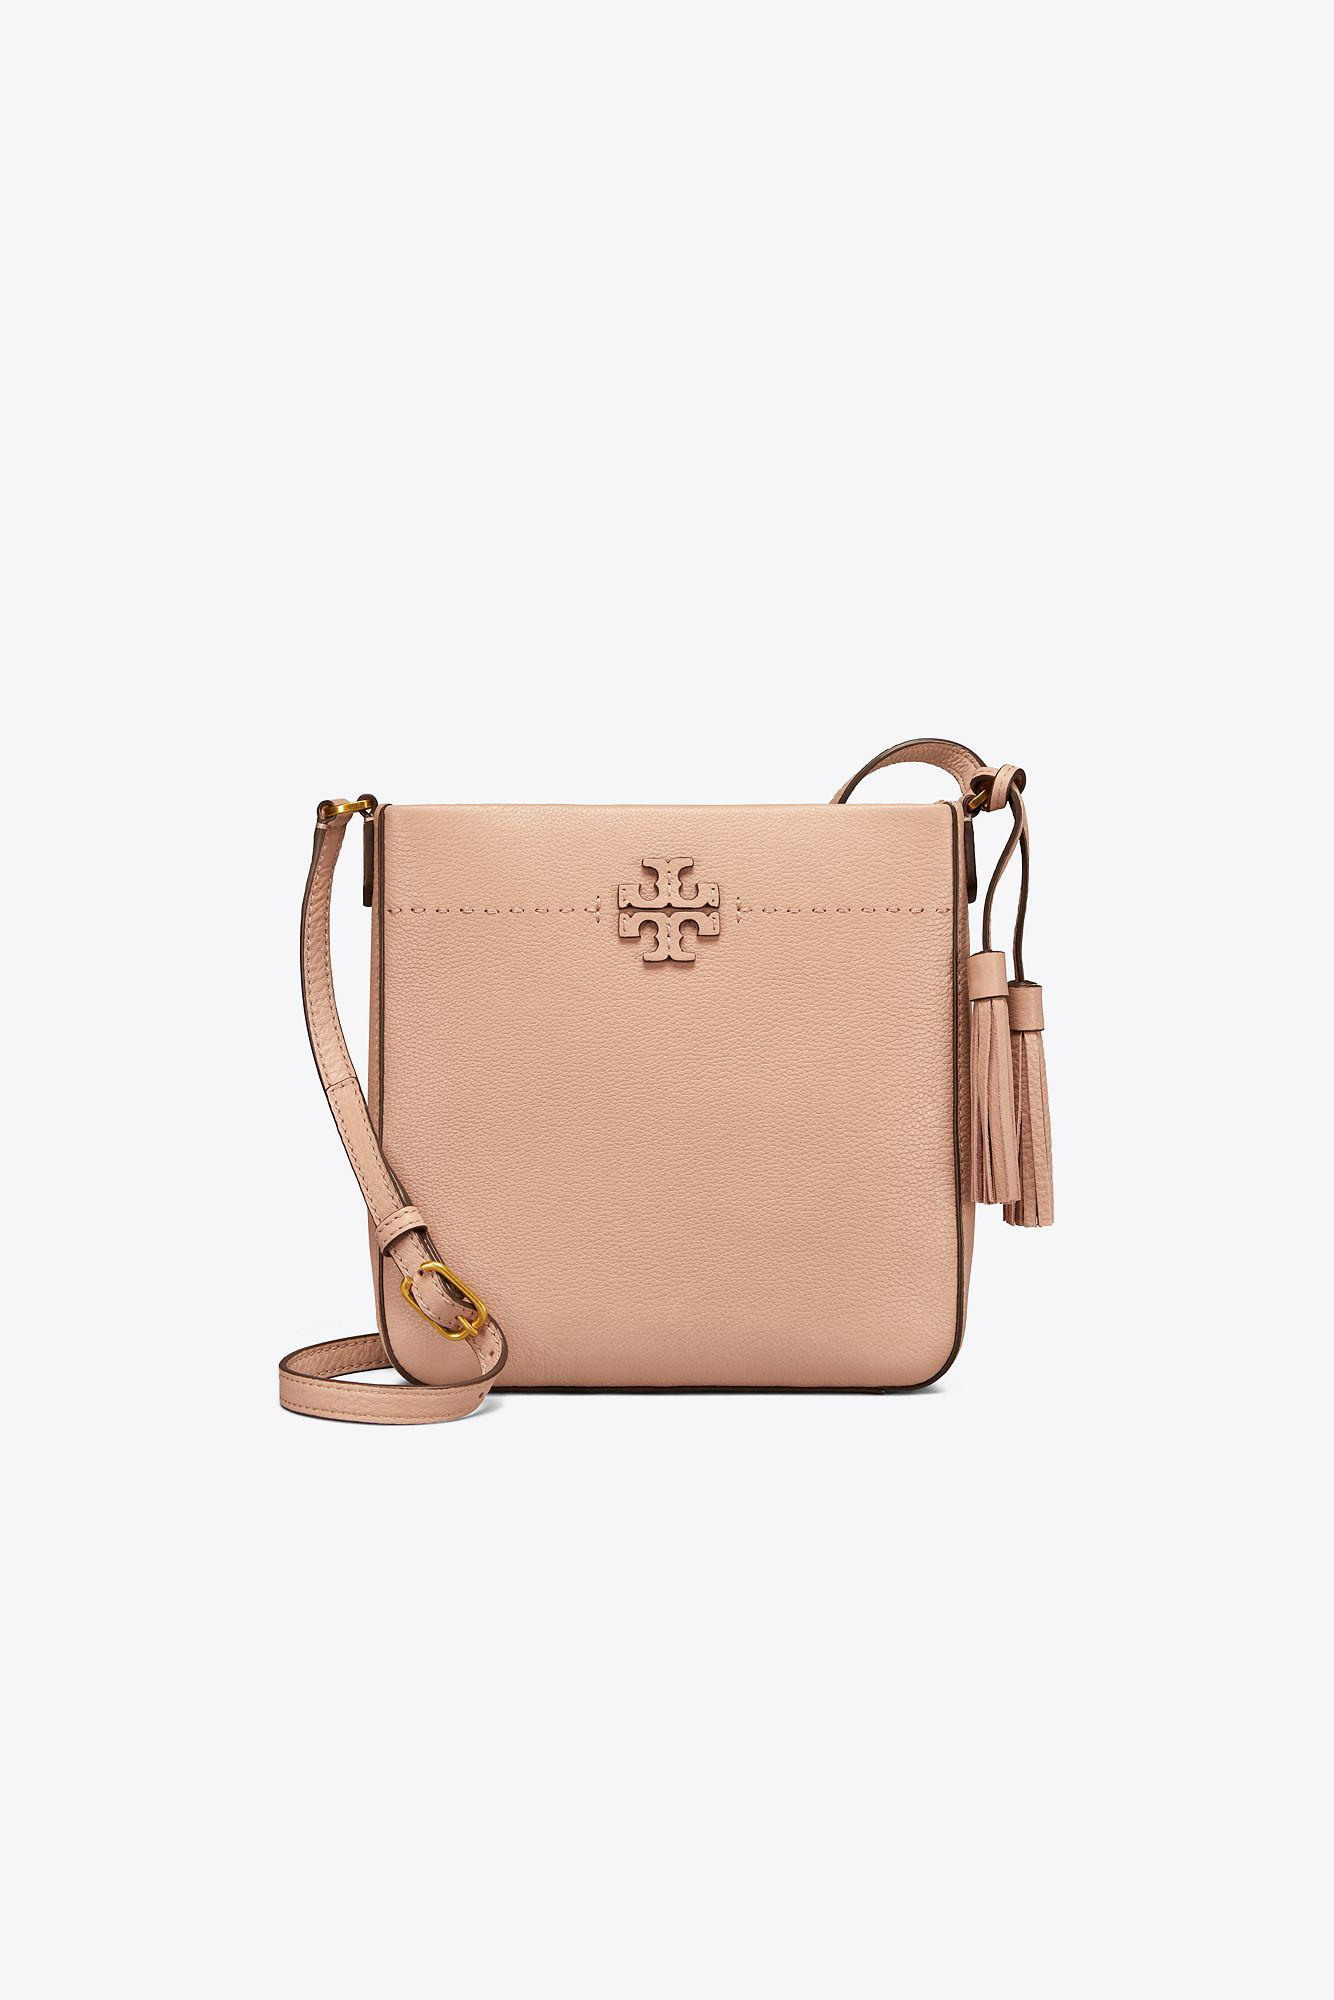 05dcb128b Tory Burch Mcgraw Swingpack in Natural - Lyst